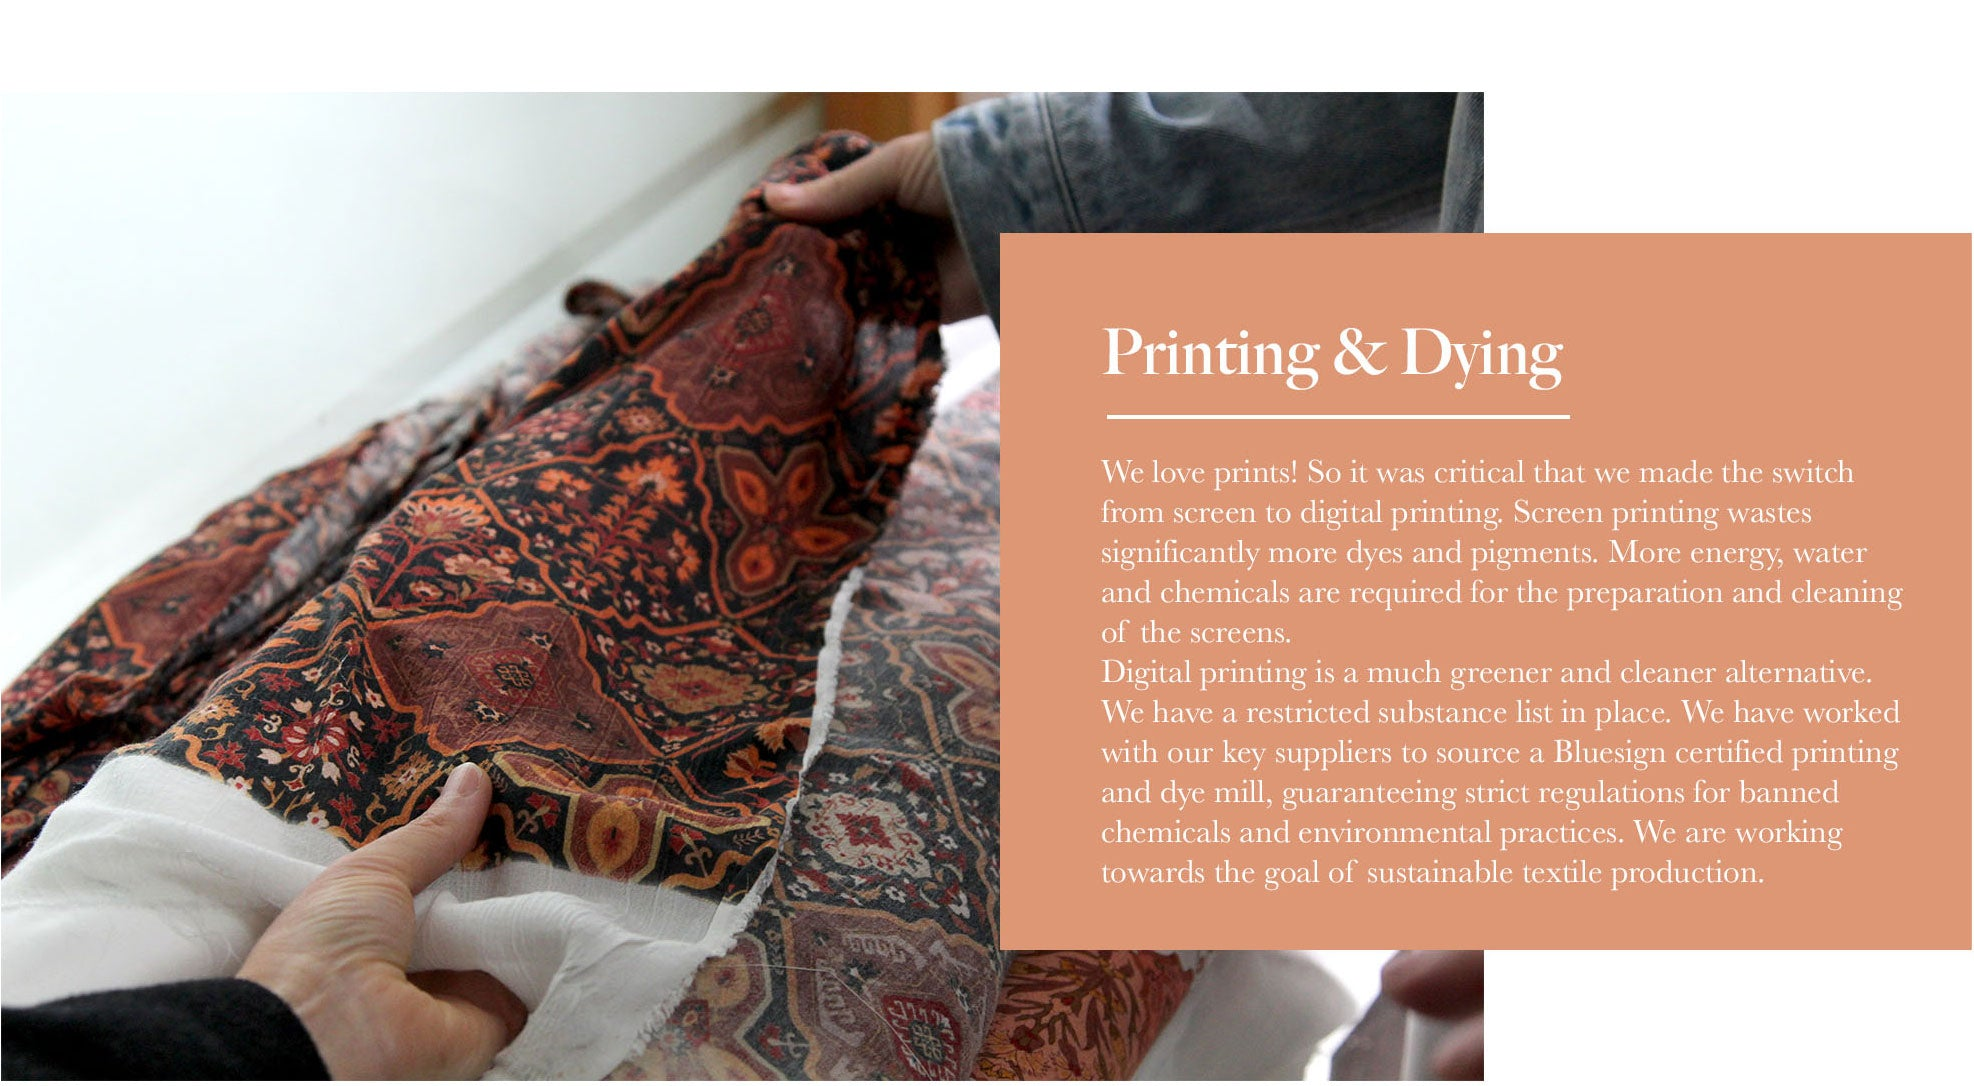 Arnhem clothing share printing & dying information during the creating of their eco friendly clothing